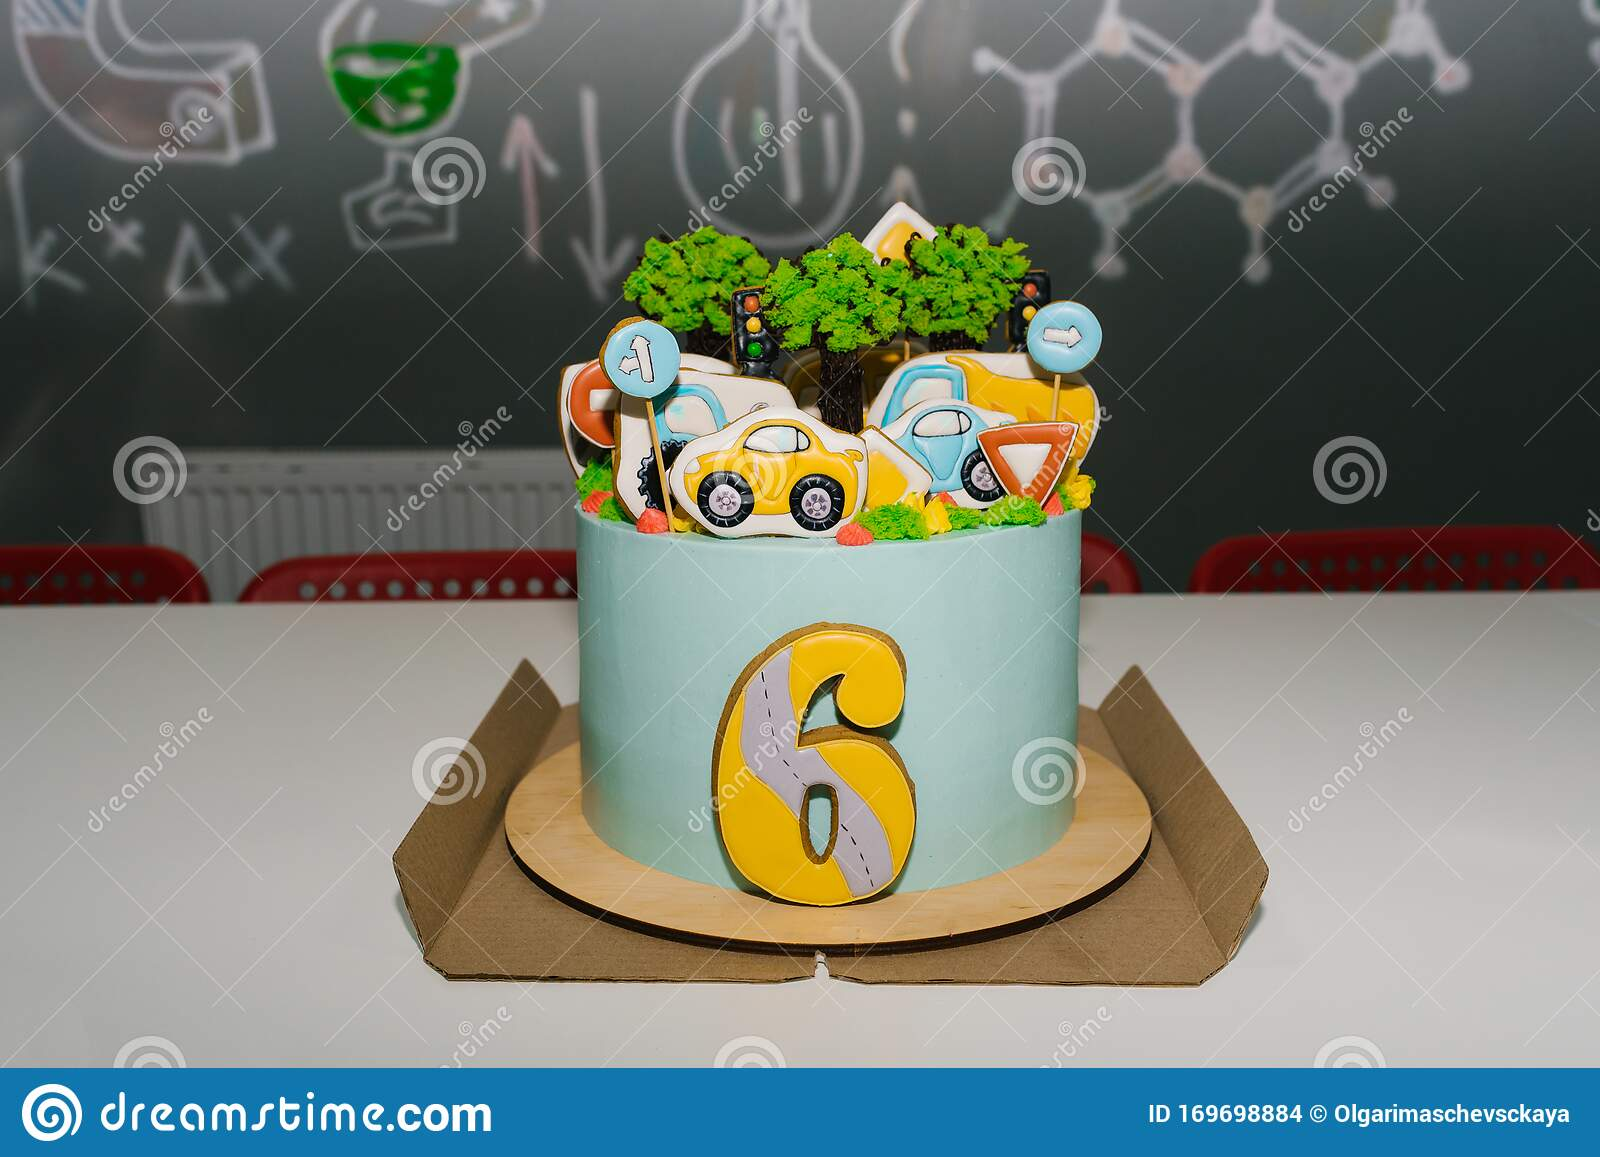 Children S Birthday Cake For A 6 Year Old Boy With Cars Stock Photo Image Of Color Bake 169698884